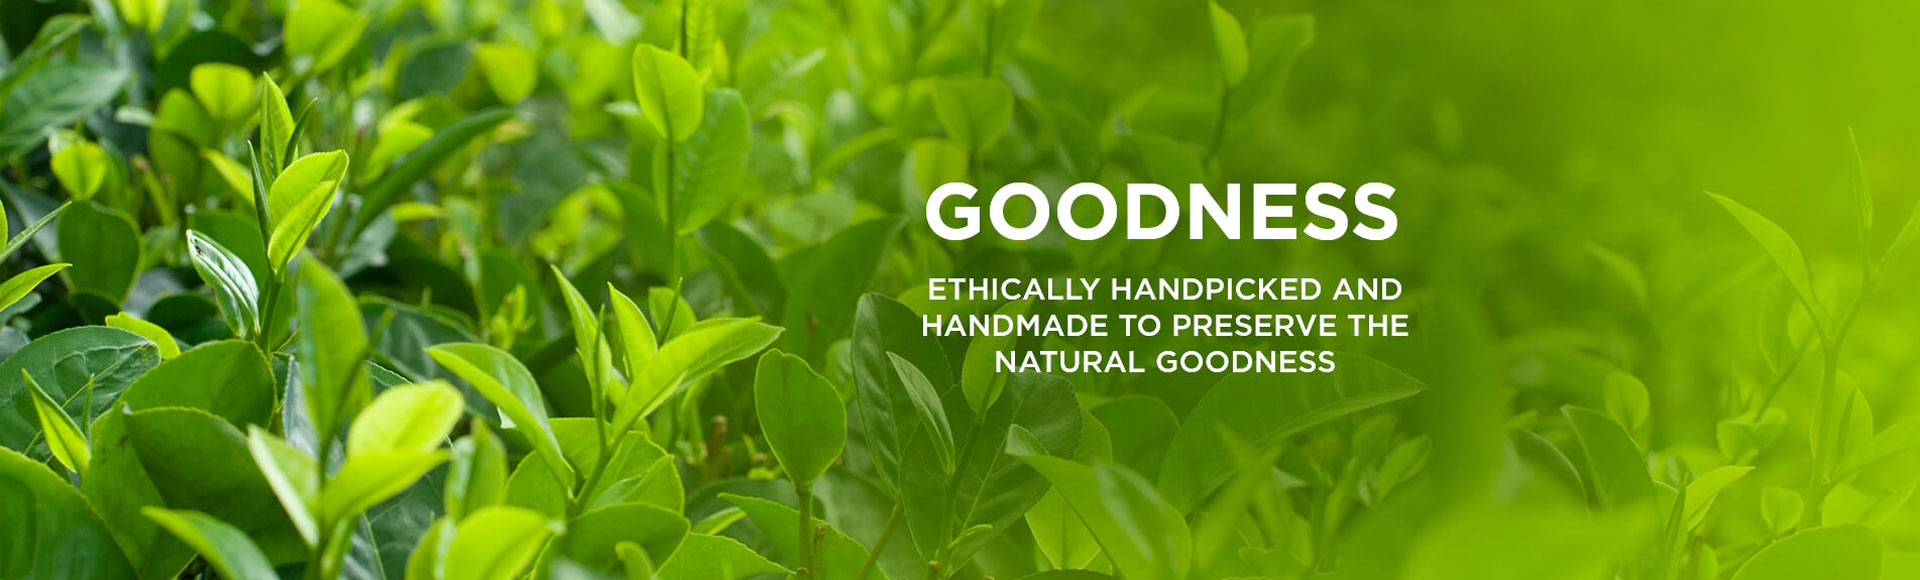 Ethically Handpicked And Handmade